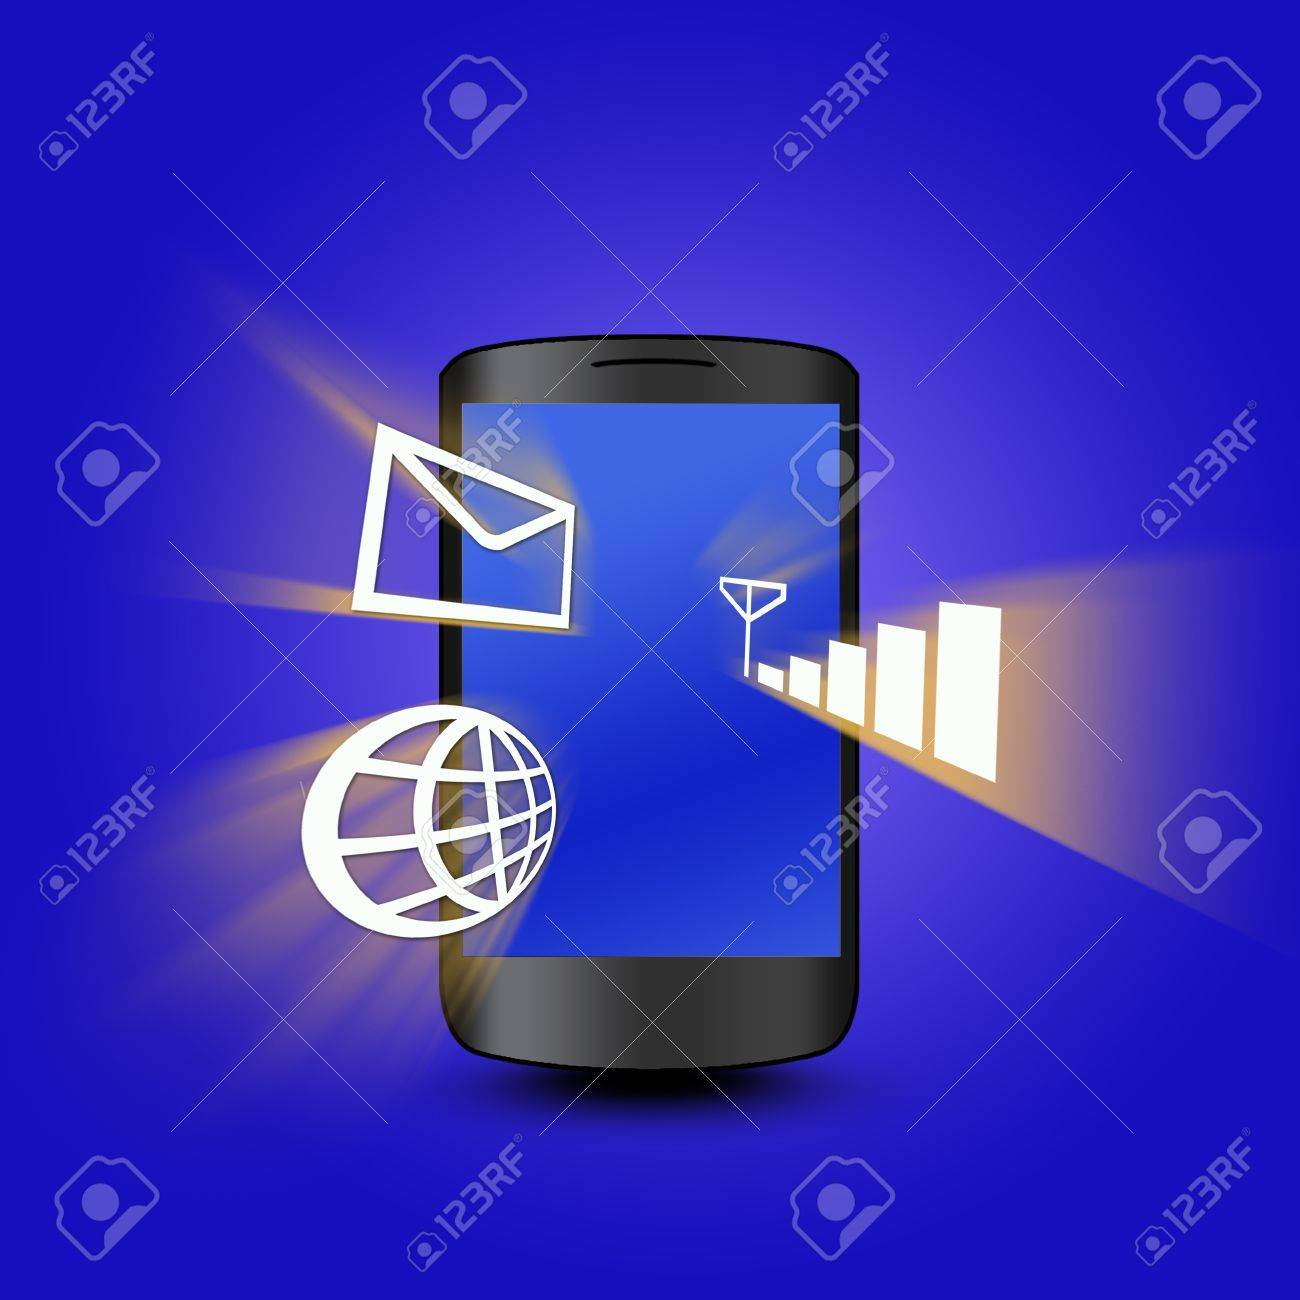 Mobile phone with network Stock Photo - 10092523